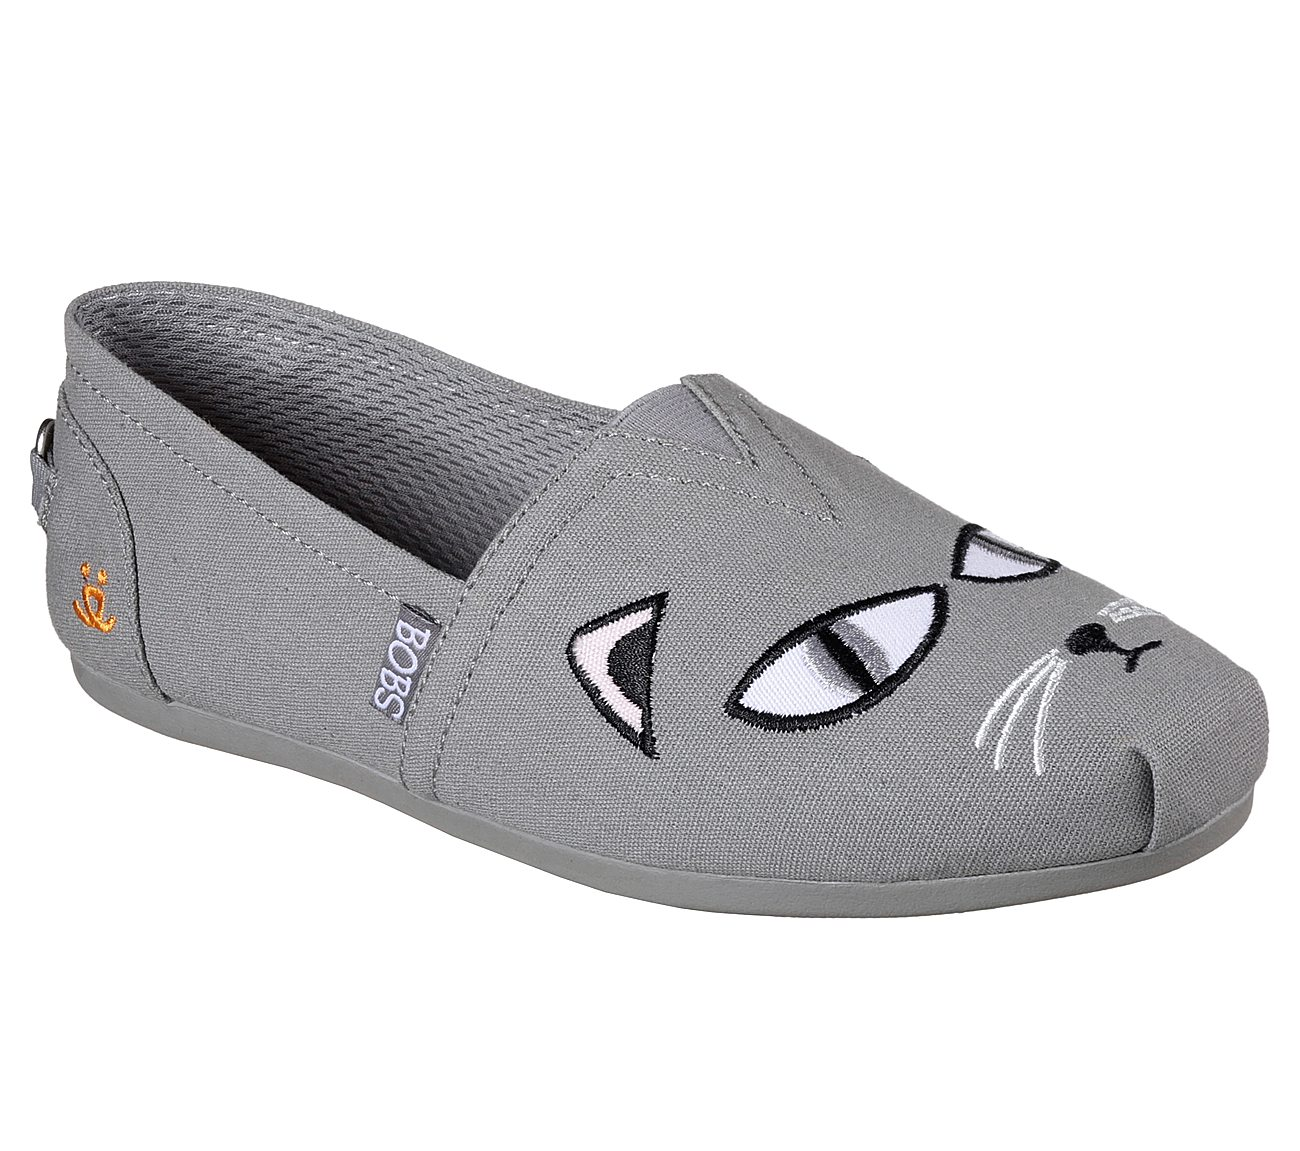 ff48ce5f9 Buy SKECHERS Bobs Plush - Wish-skers BOBS Shoes only $27.00